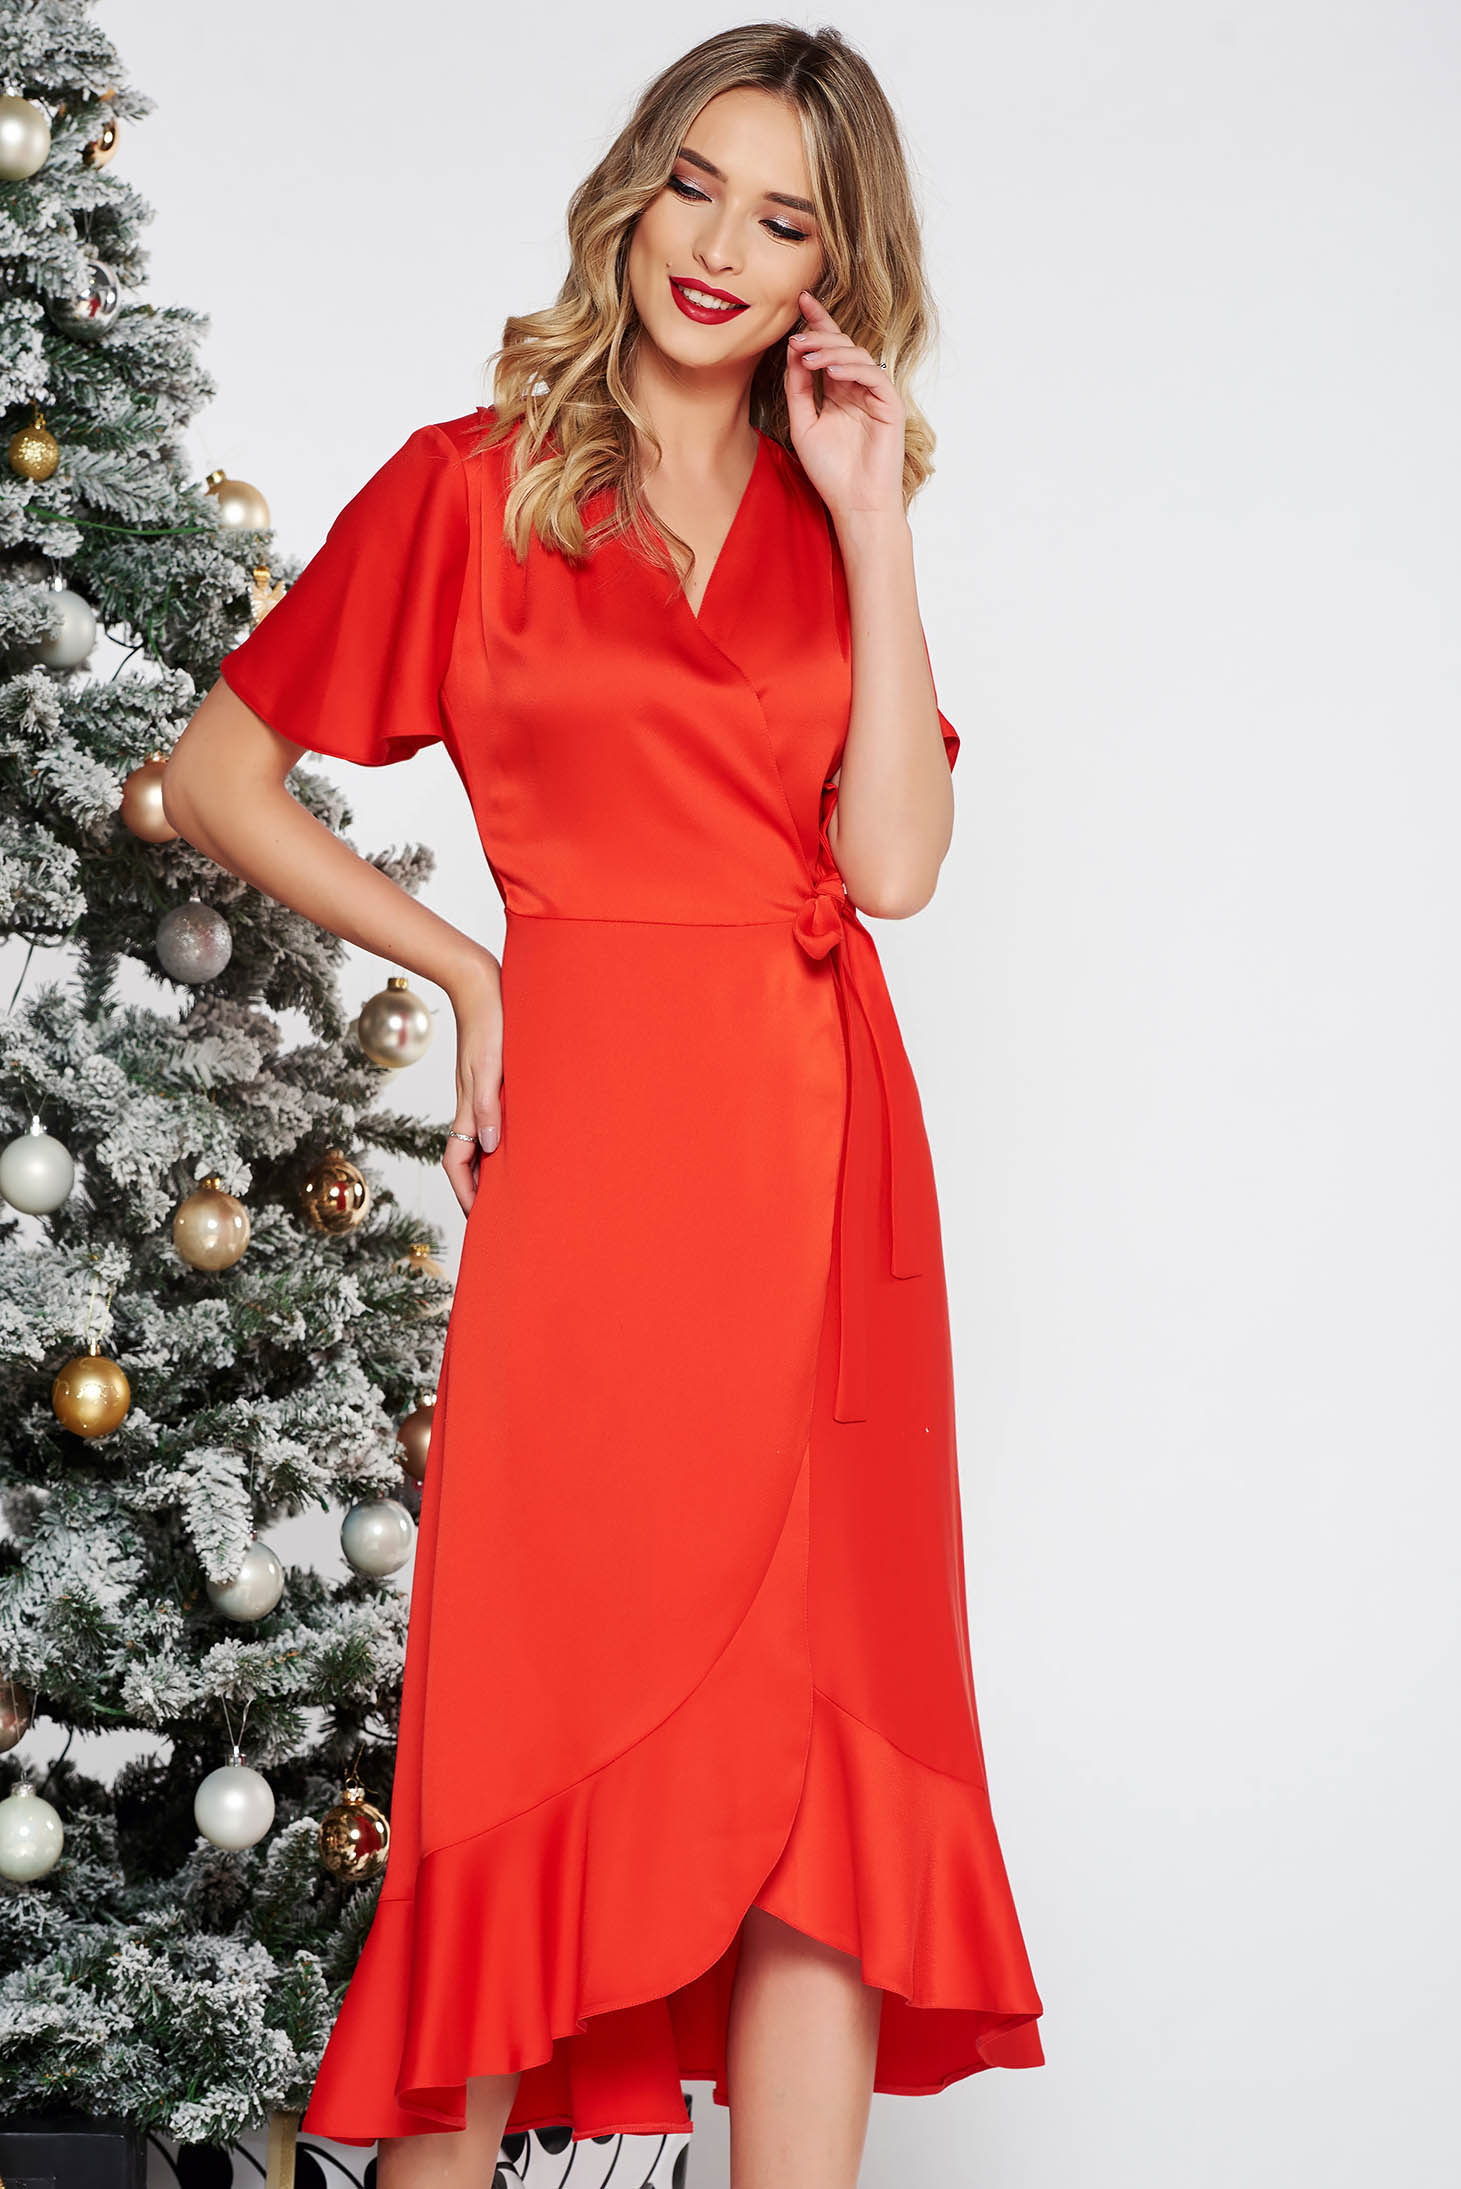 Red occasional wrap around dress non-flexible thin fabric with ruffles at the buttom of the dress